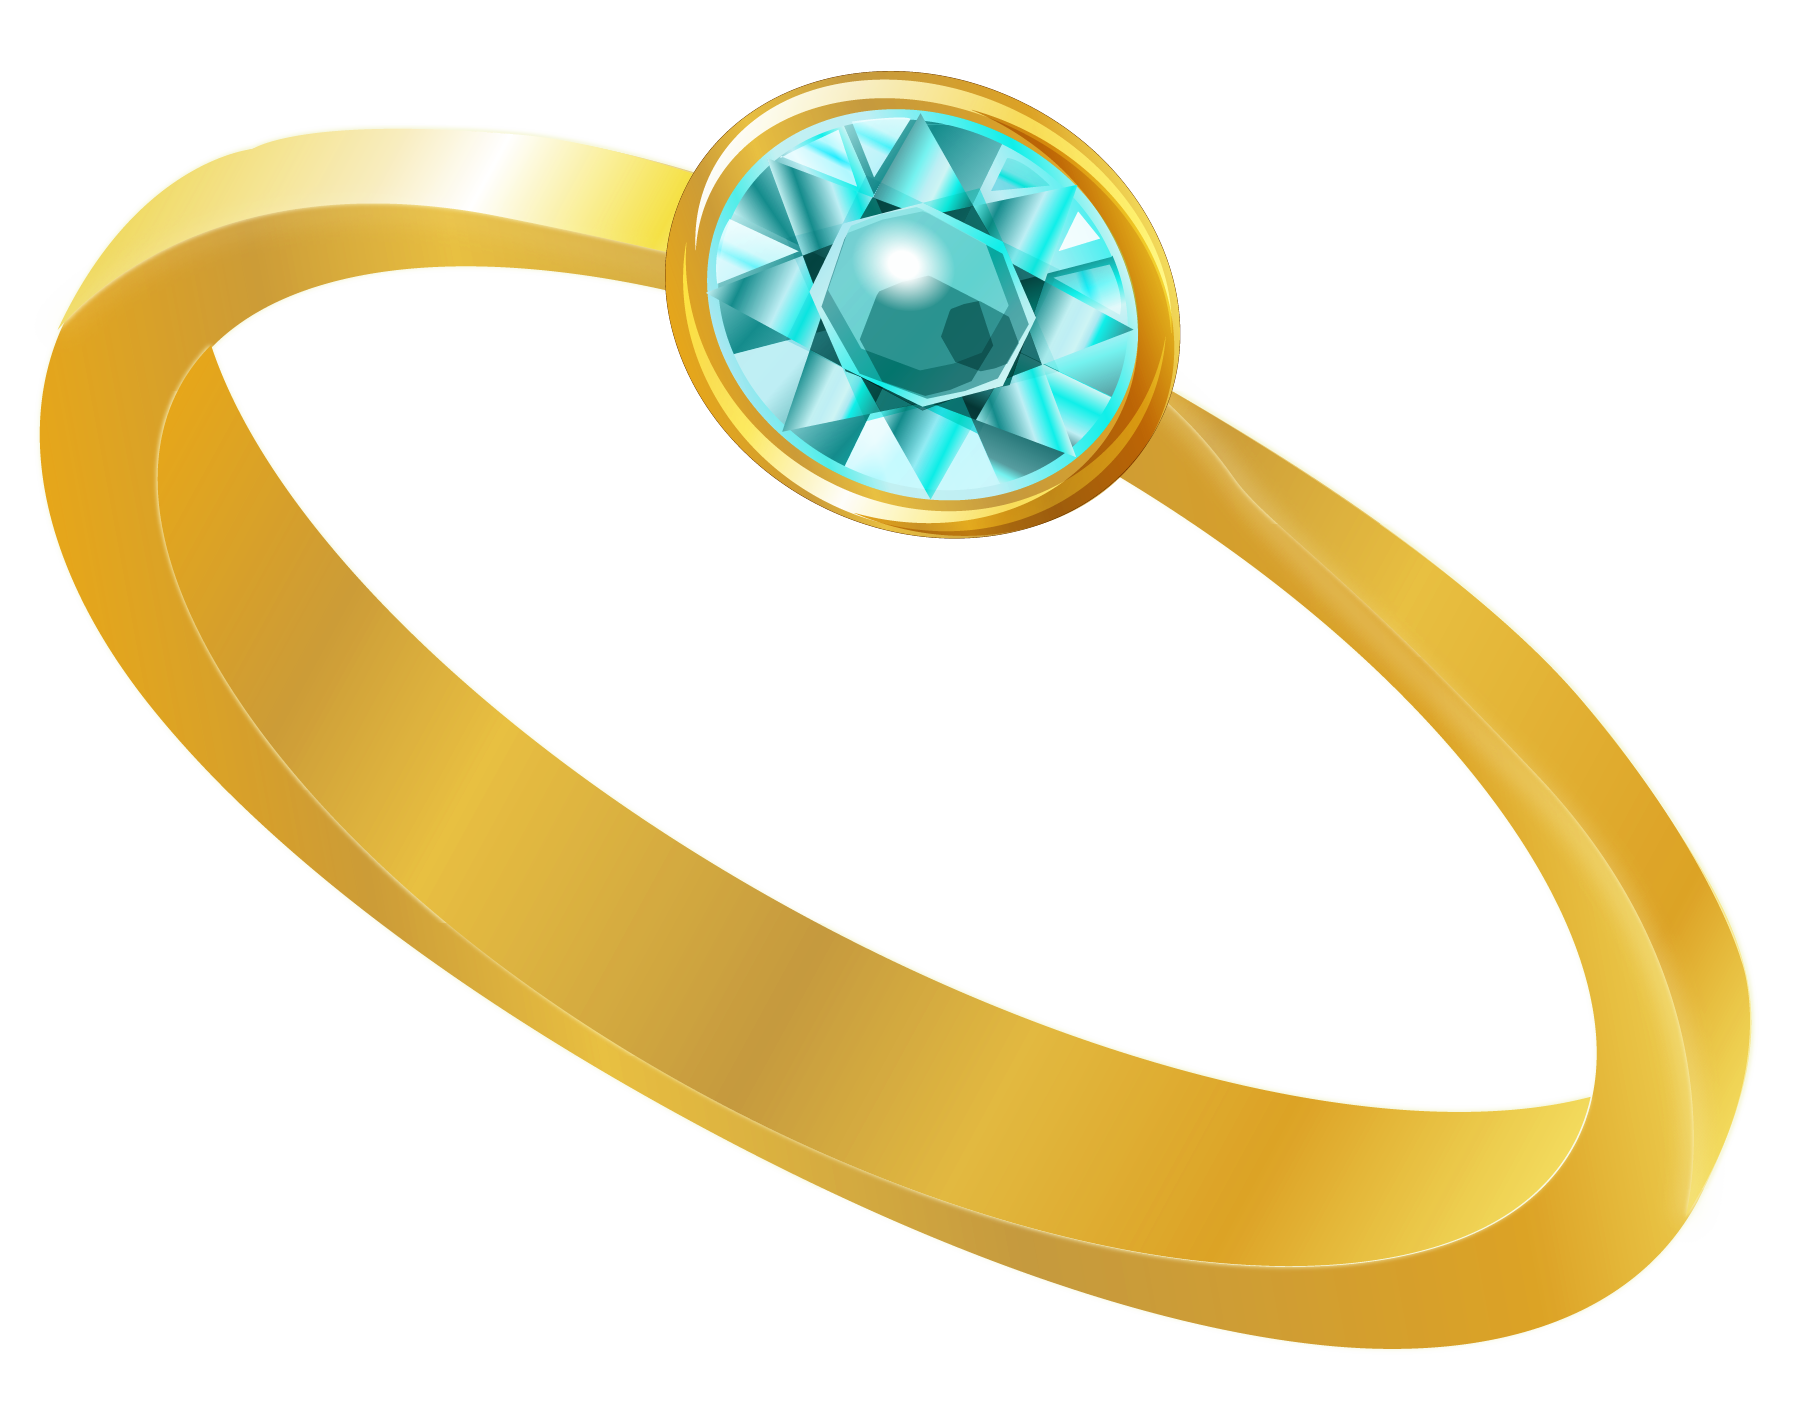 Golden ring clipart image free stock Golden Ring with Blue Diamond PNG Clipart   Gallery Yopriceville ... image free stock